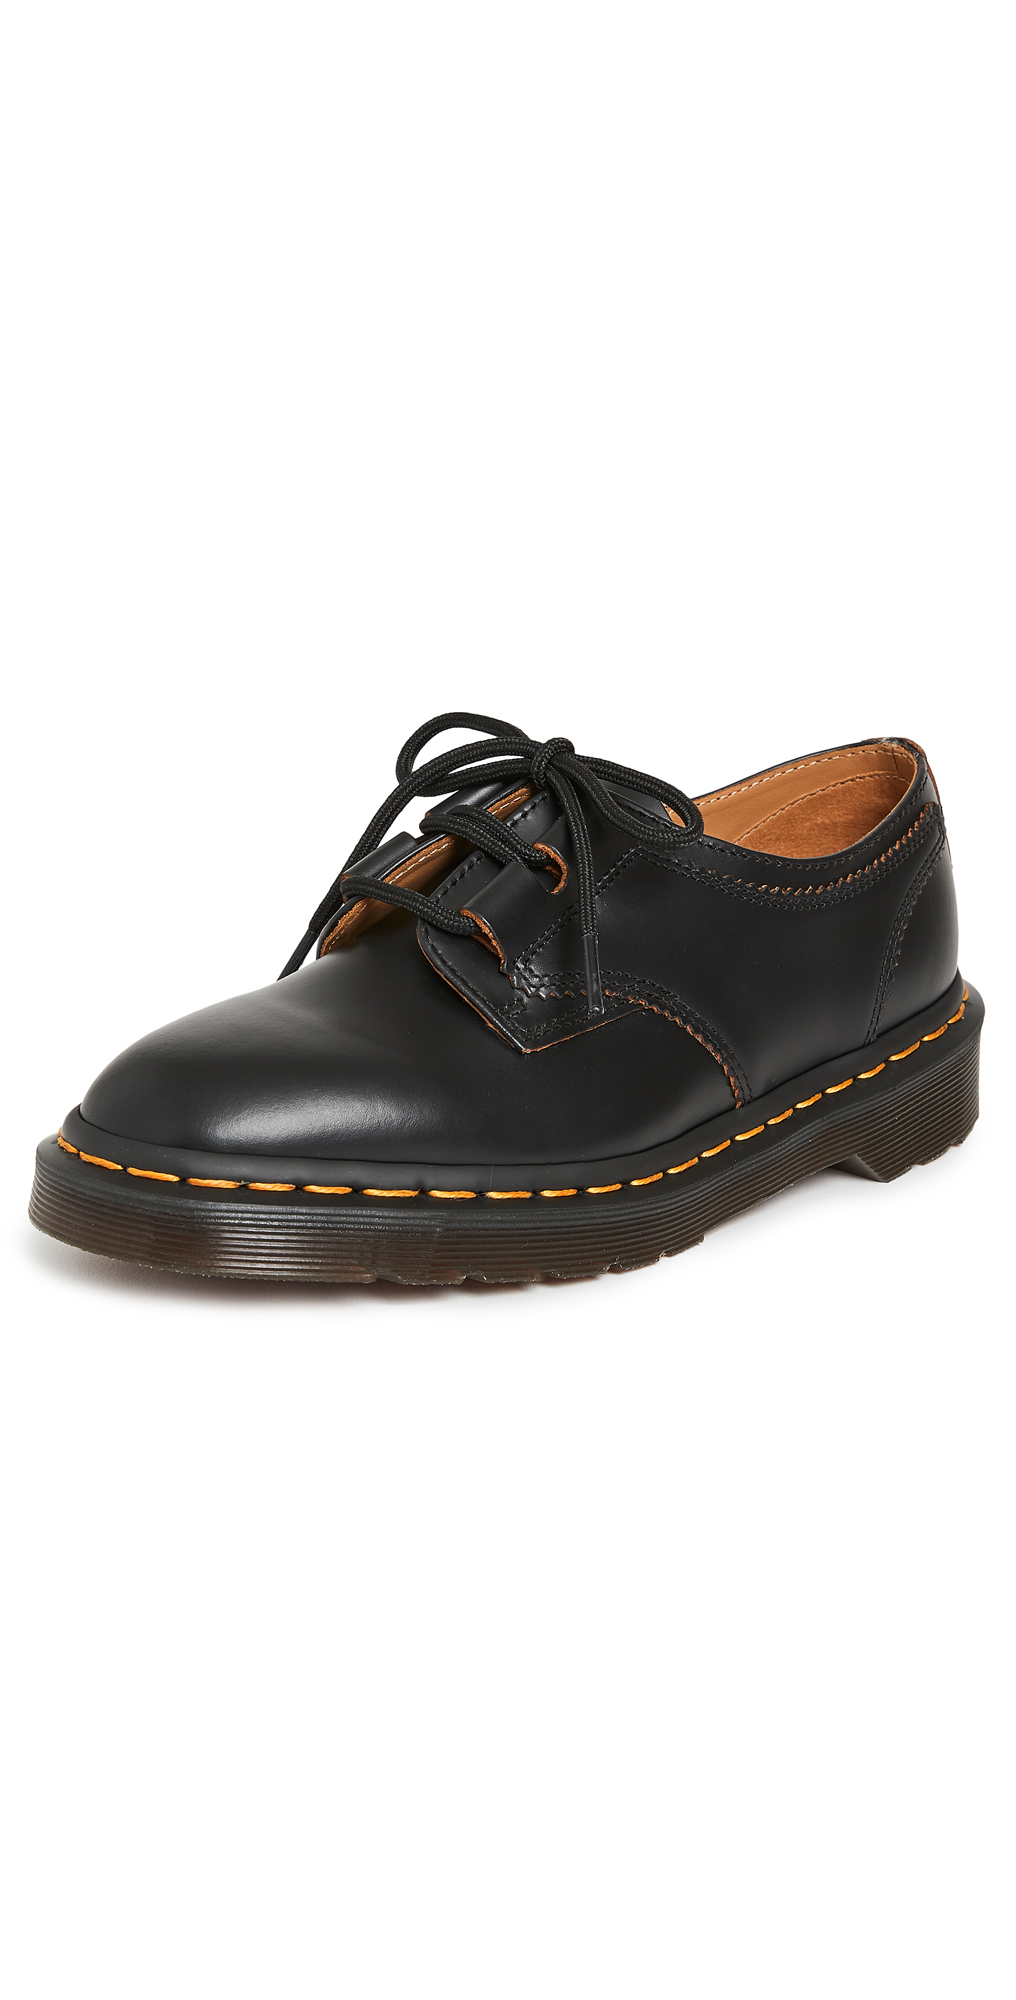 Dr. Martens 1461 Ghillie Oxfords